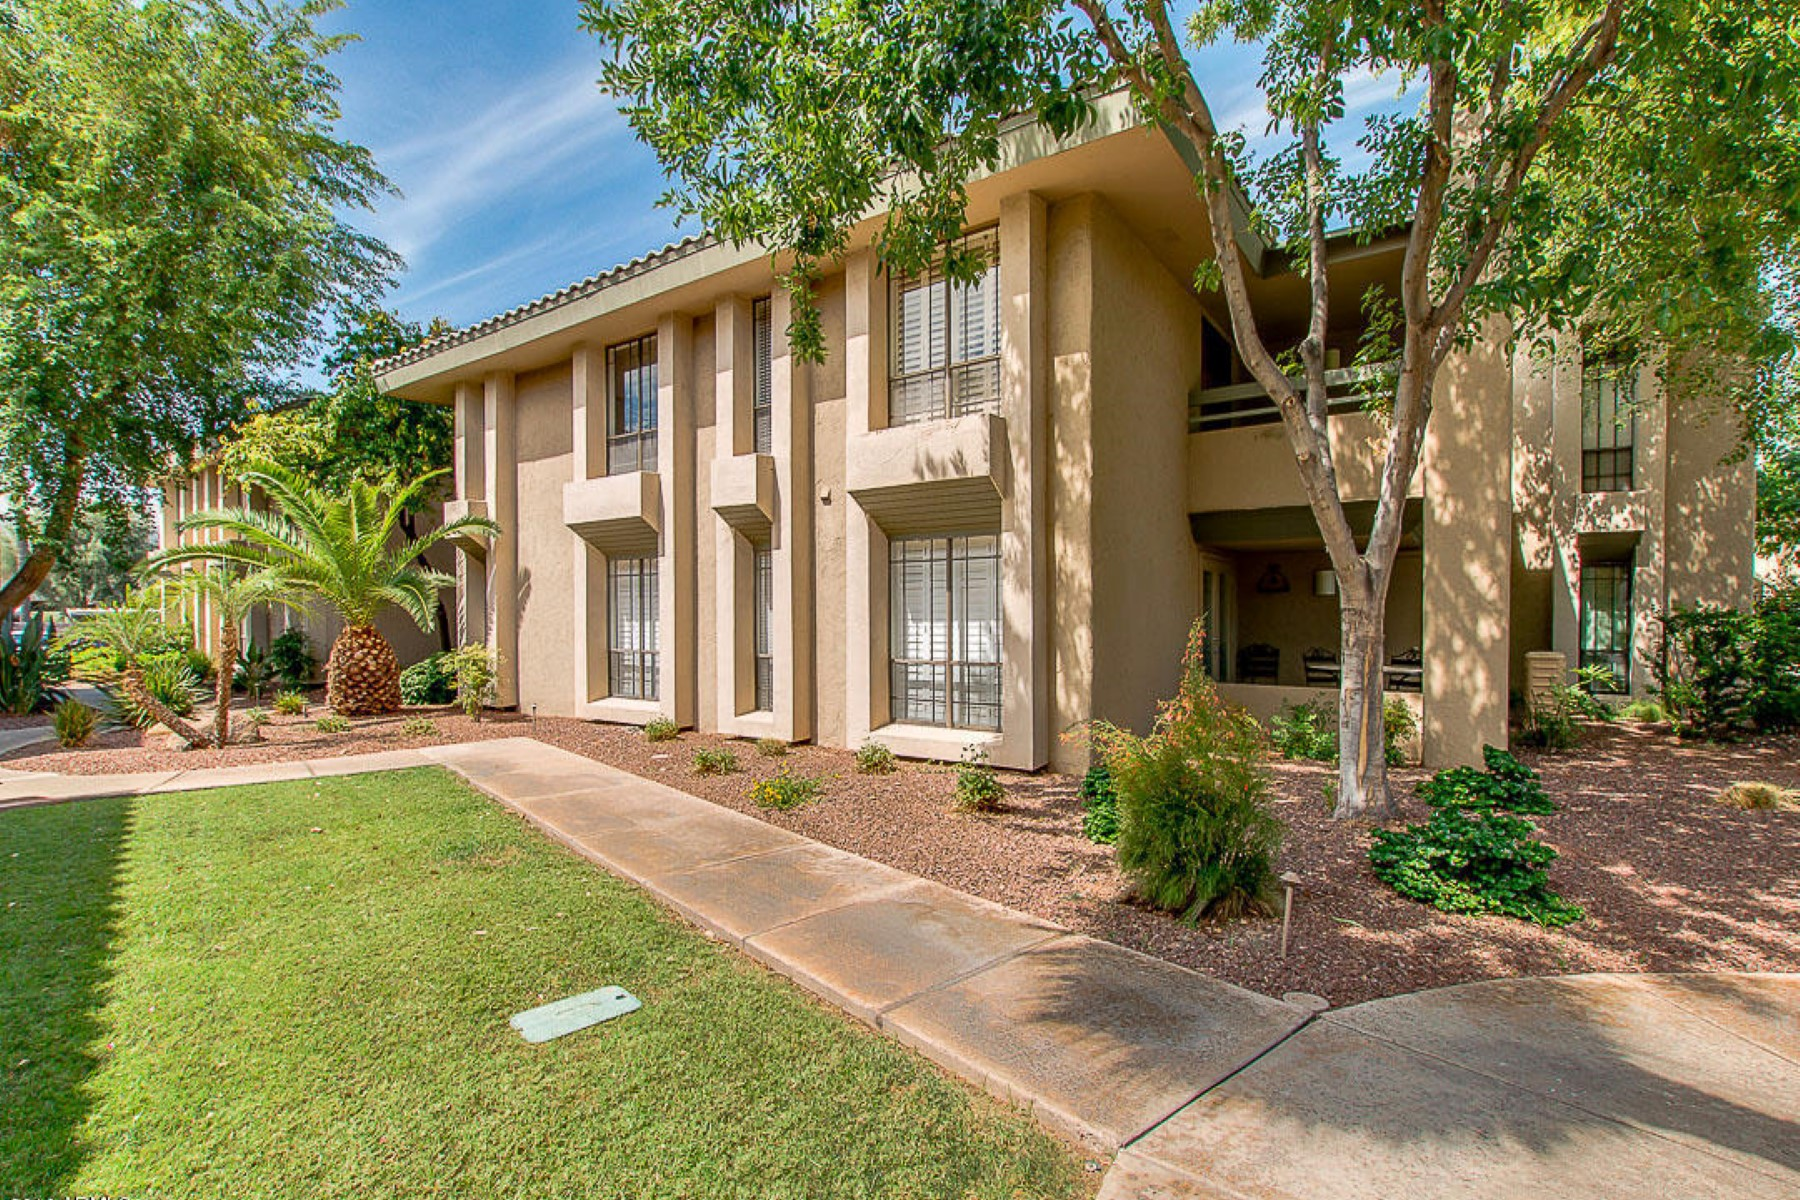 Apartamento por un Venta en charming two bedroom condo at The Cloister at The Biltmore 5213 N 24th St #201 Phoenix, Arizona, 85016 Estados Unidos